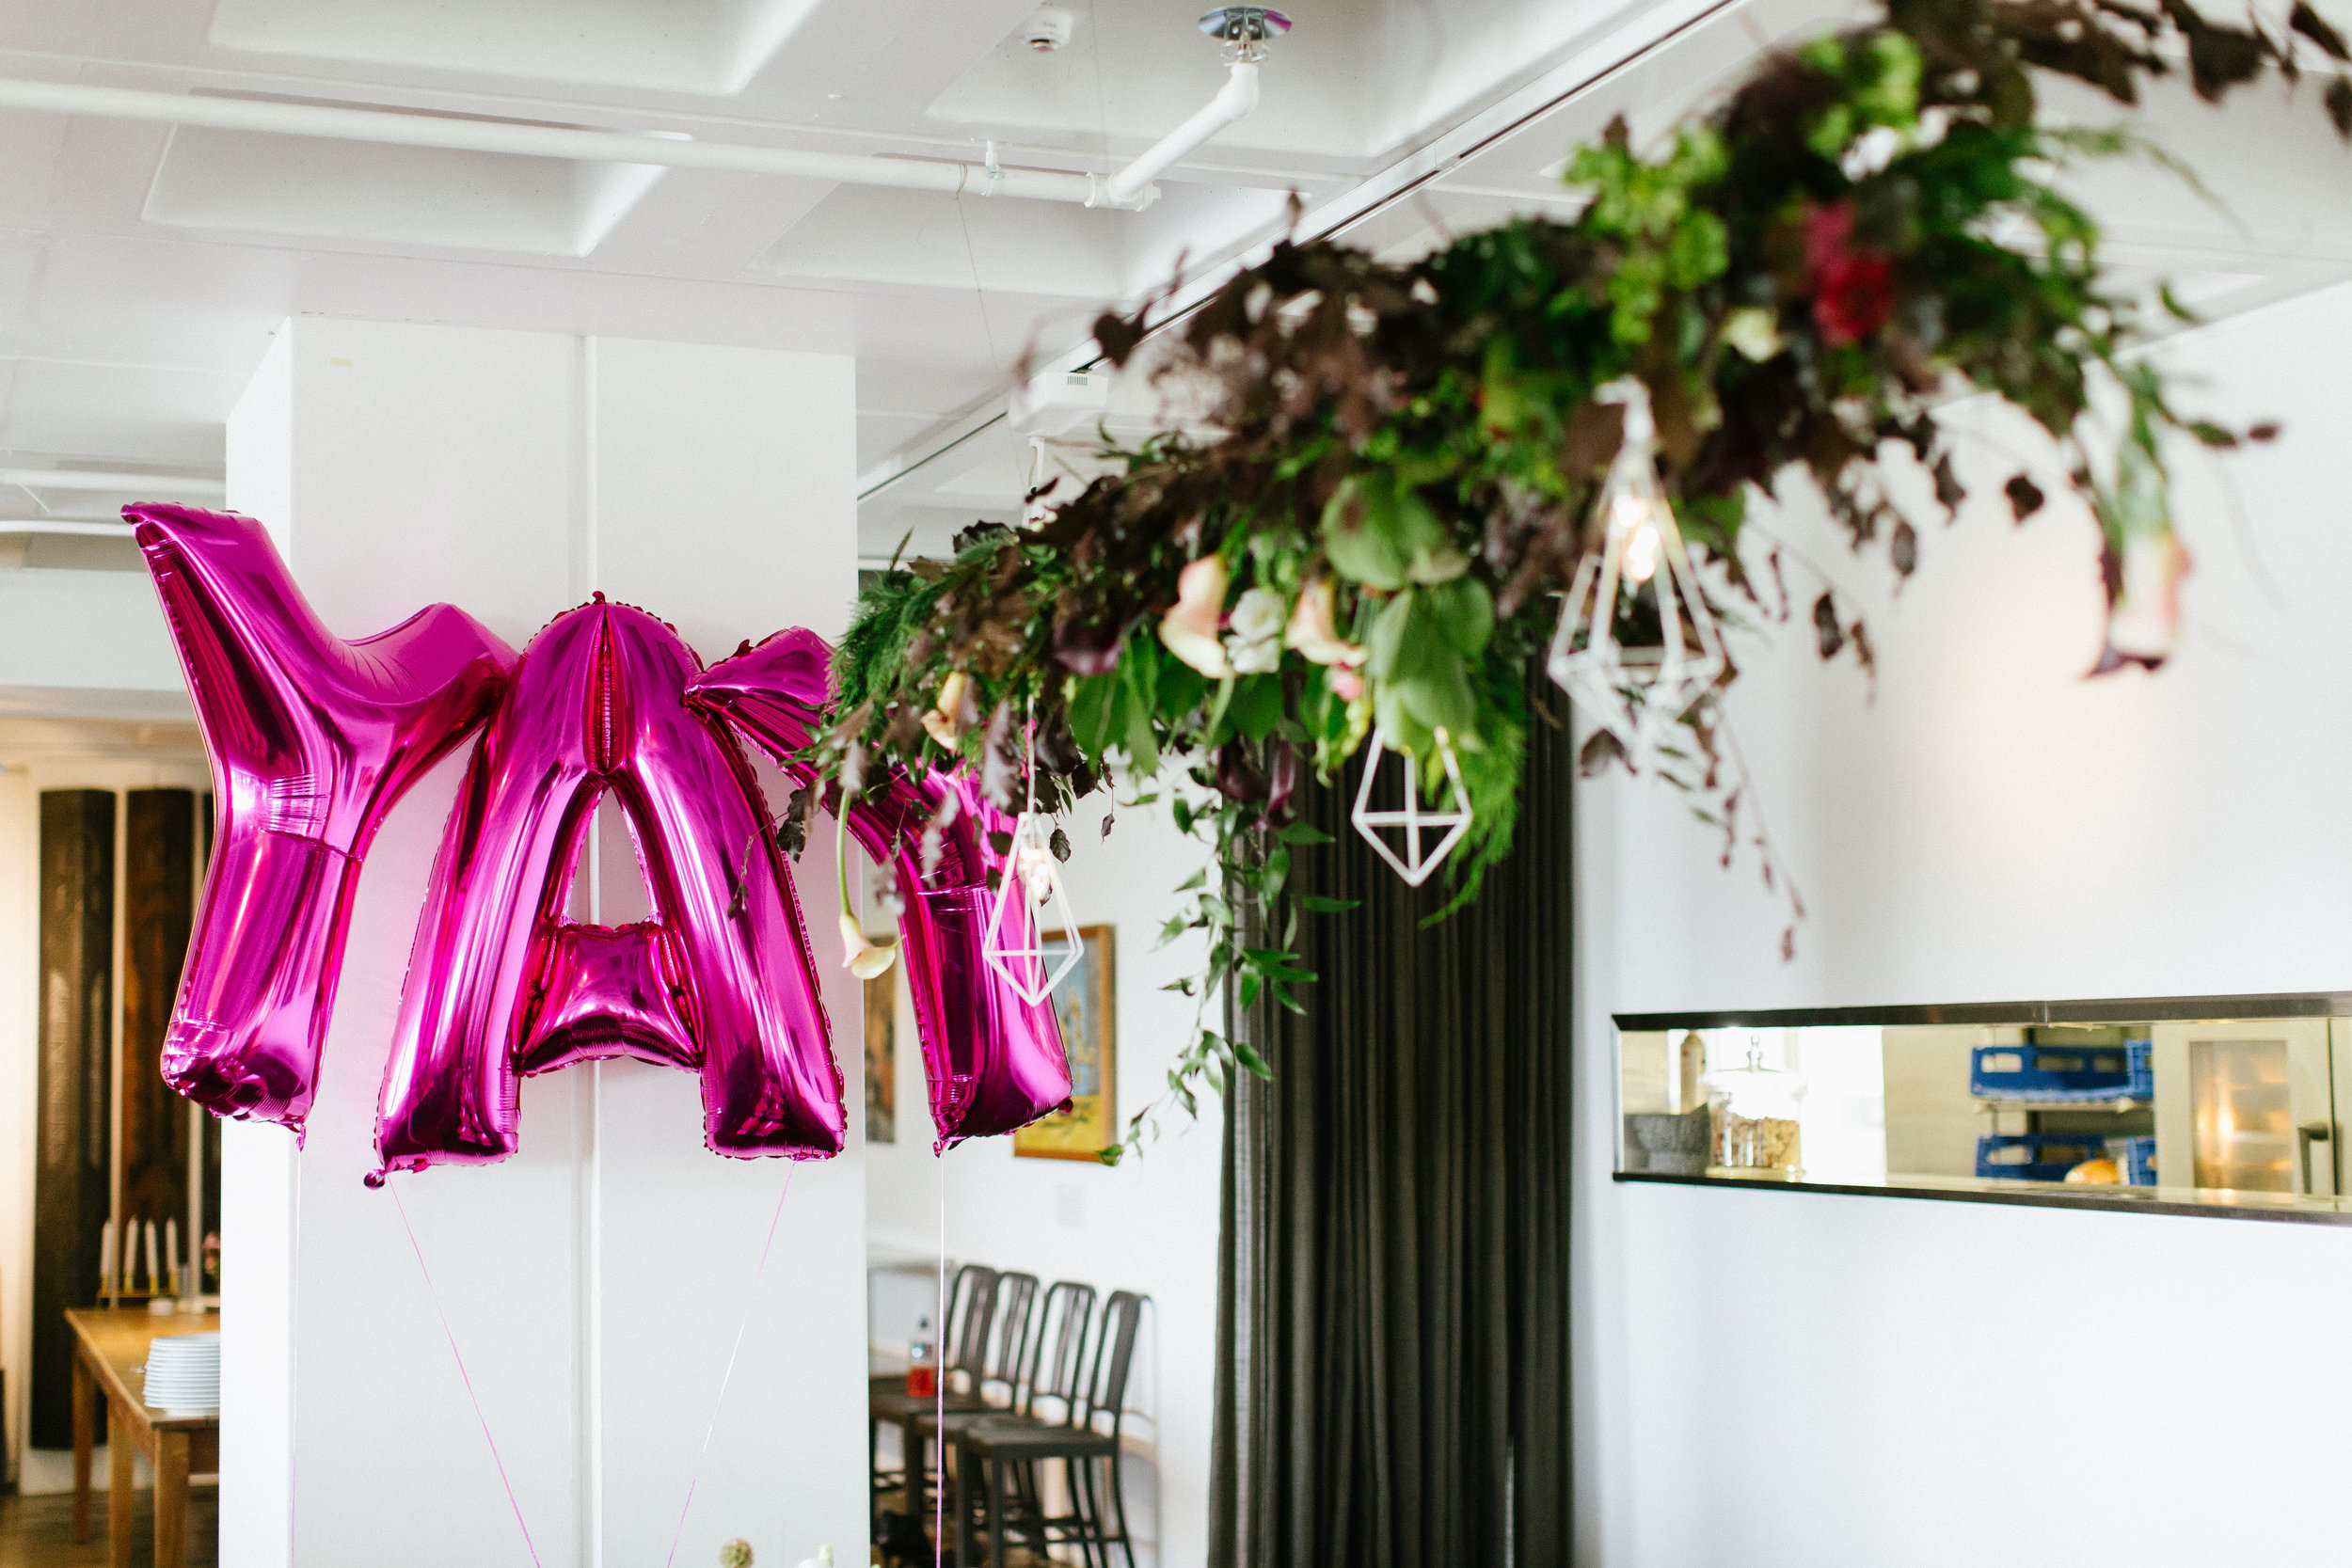 Gradulation Styled Party Peony Hanging Installation Wedding Floral Arrangements Honey and Milk Wellington Florist Event Floristy YAY Balloons Confetti Love Styling Geometric Roses